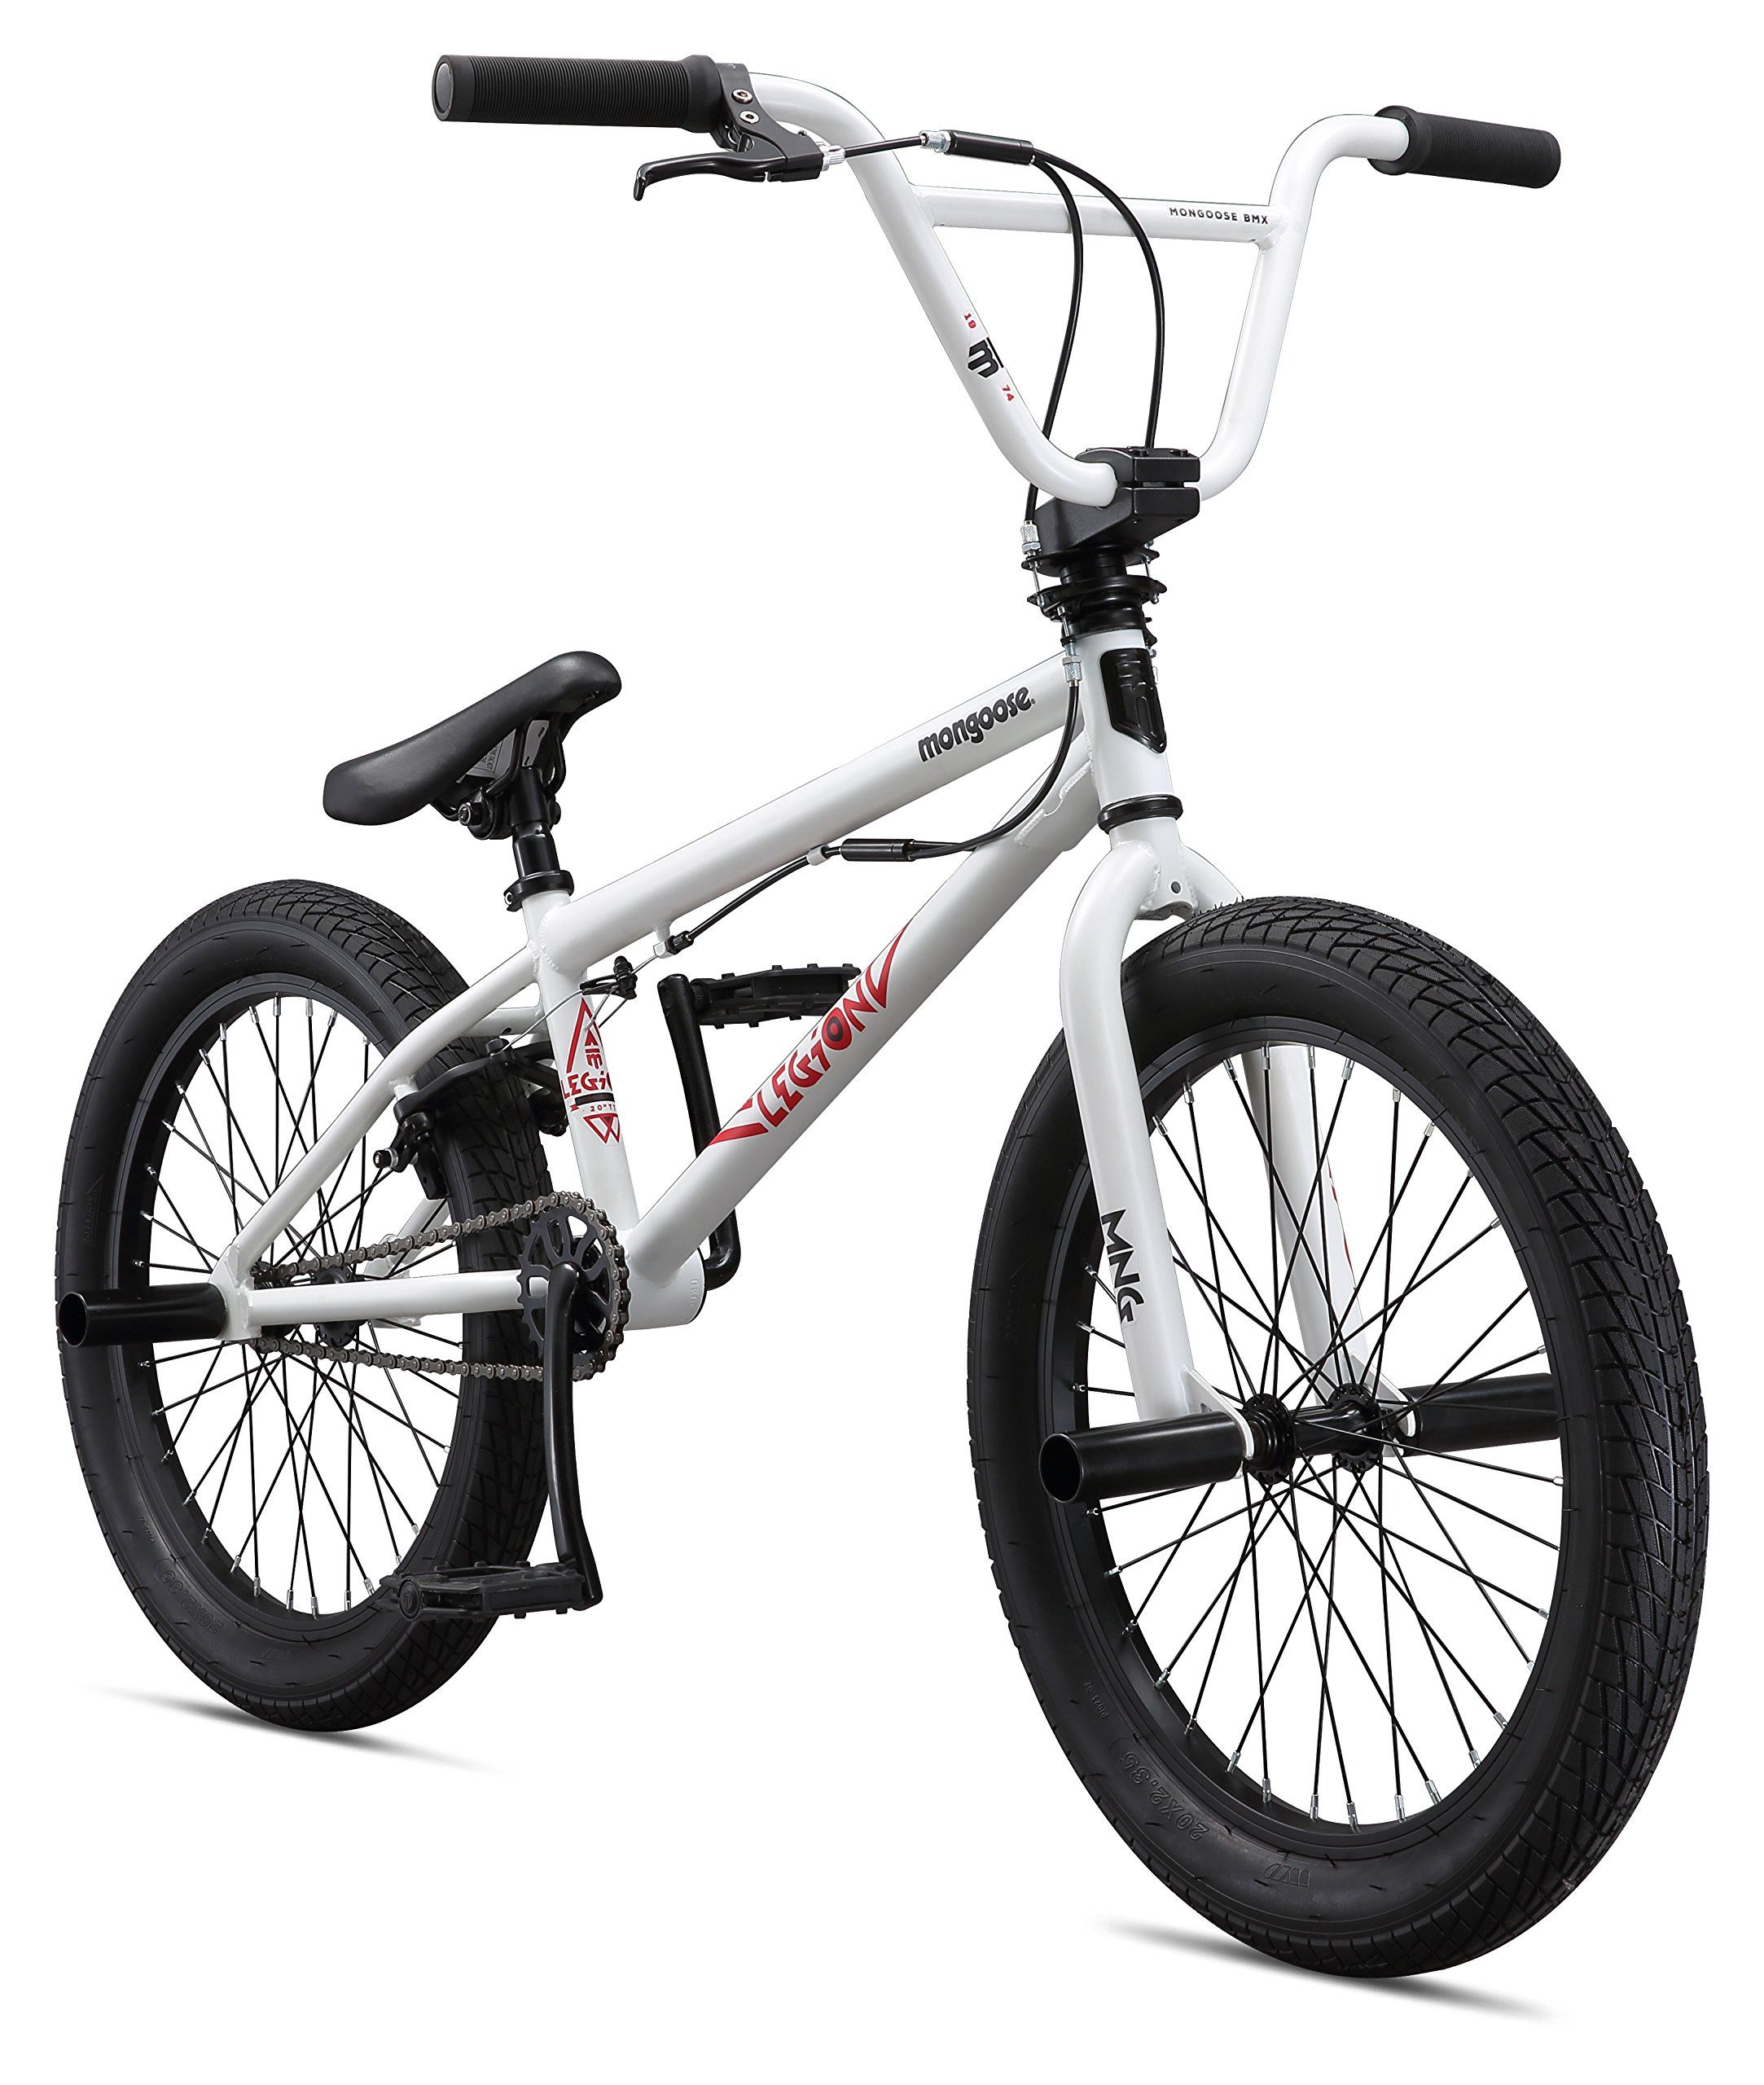 328a7ab143b9 Mongoose Boys Legion L20 Bicycle White One Size/20 >>> Check out this great  product. (This is an affiliate link) #HashTag3